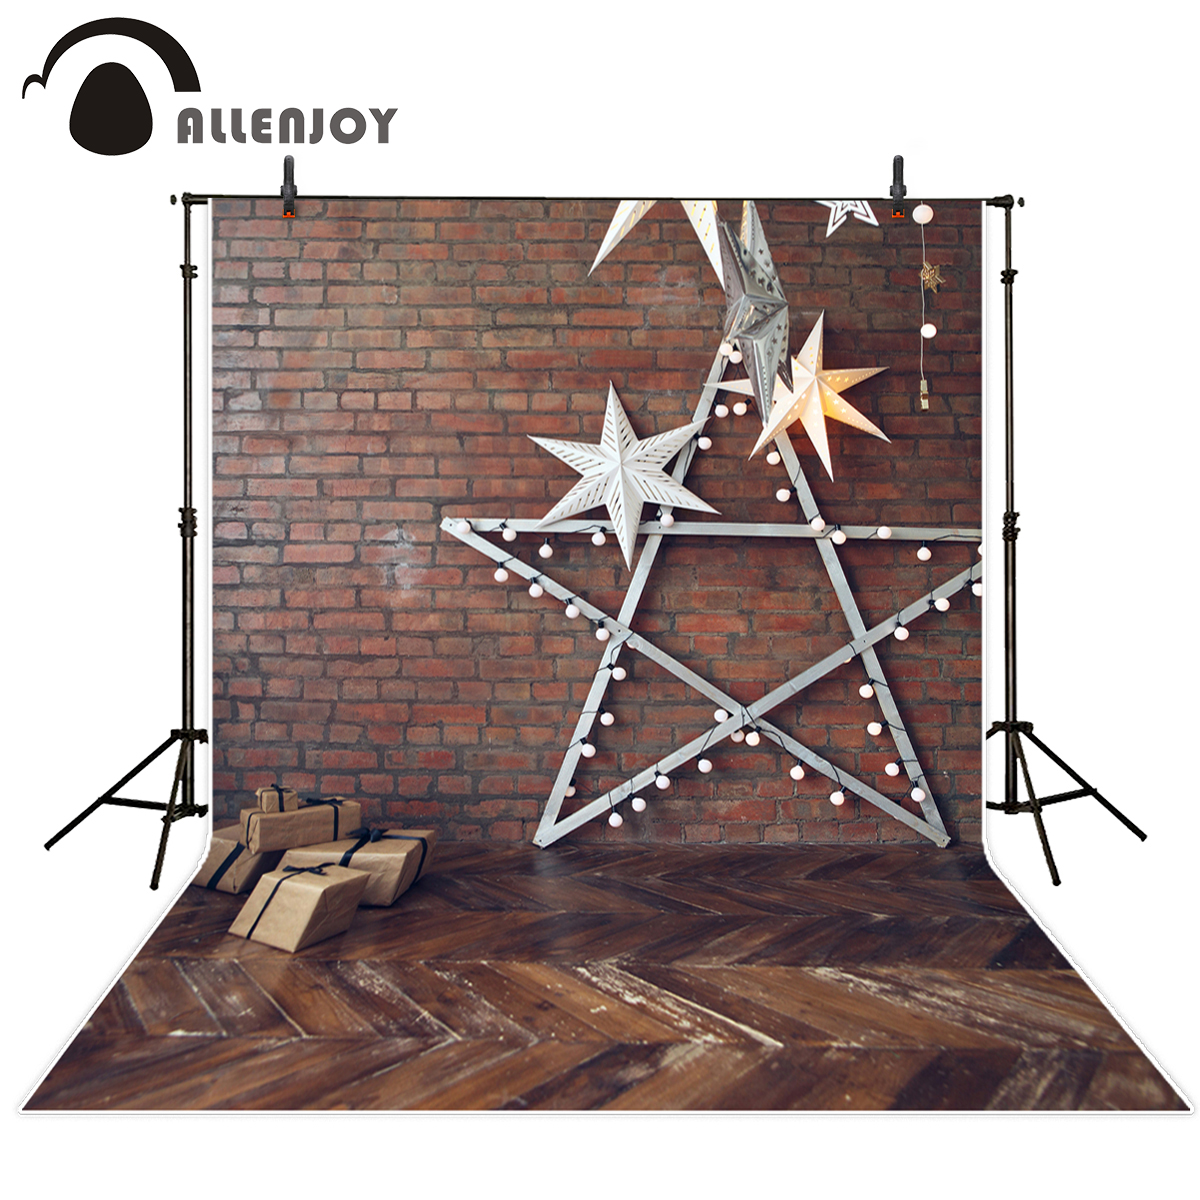 Allenjoy photography backdrops brick wall snowflake star wood floor decor backgrounds for photo studio photo background vinyl new original 3115ps 23t b30 230v 8 10w 8038 aluminum frame axial fan